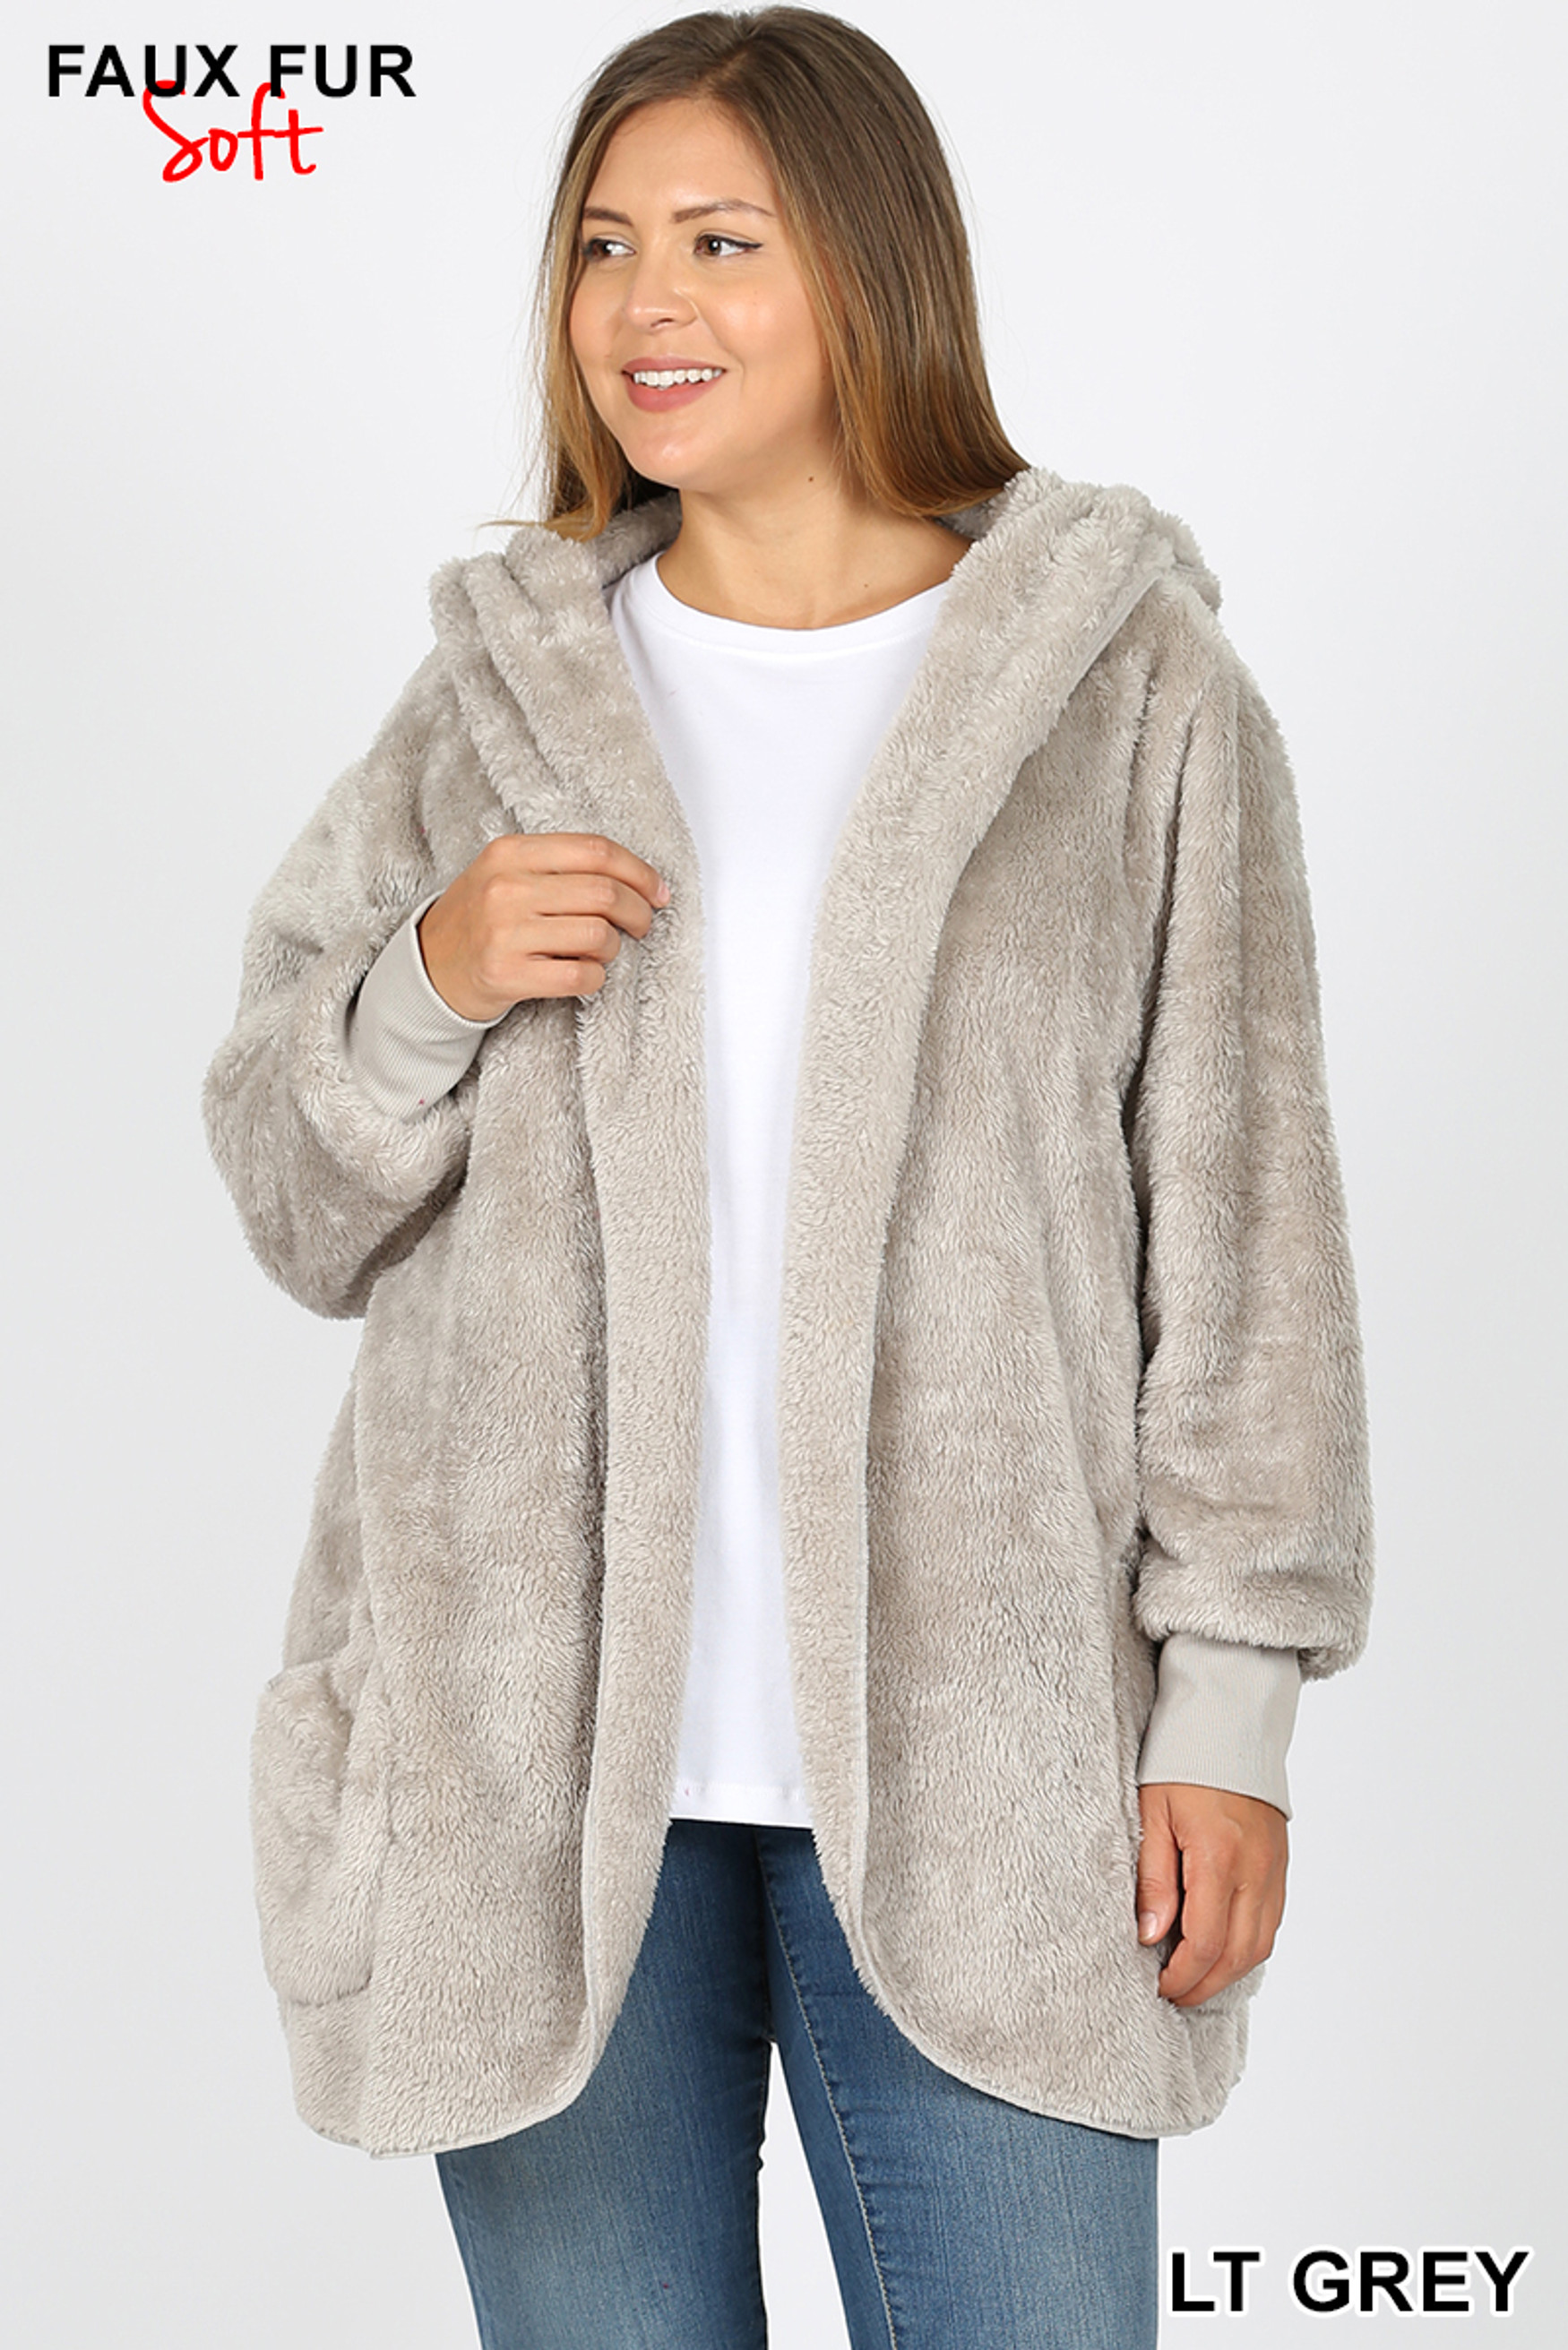 Front Image of Light Grey Faux Fur Hooded Cocoon Plus Size Jacket with Pockets